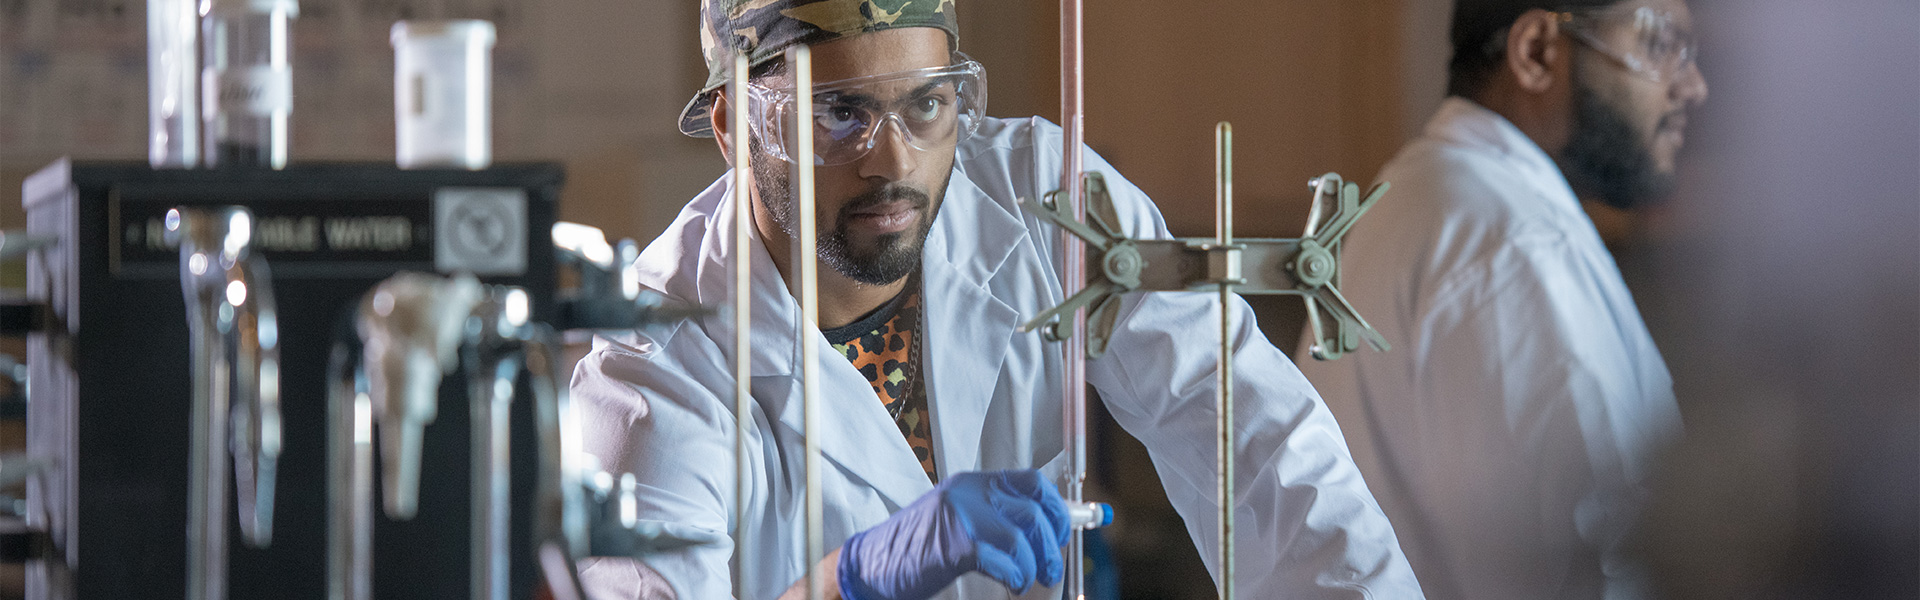 Student working with chemicals in a lab